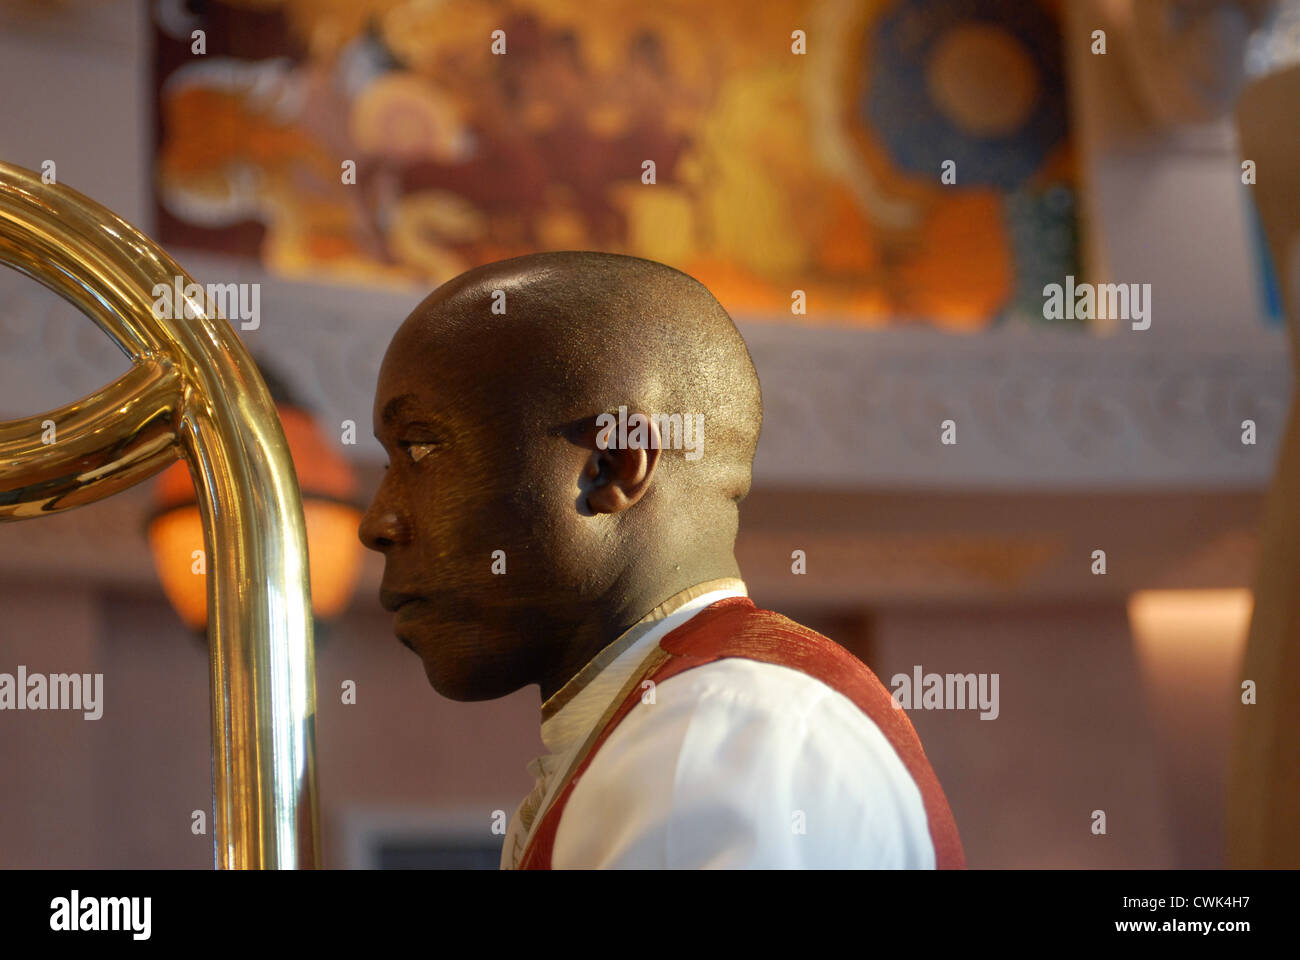 Bellboy in the Atlantis Hotel, The Palm, Dubai, UAE, United Arab Emirates, Persian Gulf, Arabian Peninsula, Asia. - Stock Image